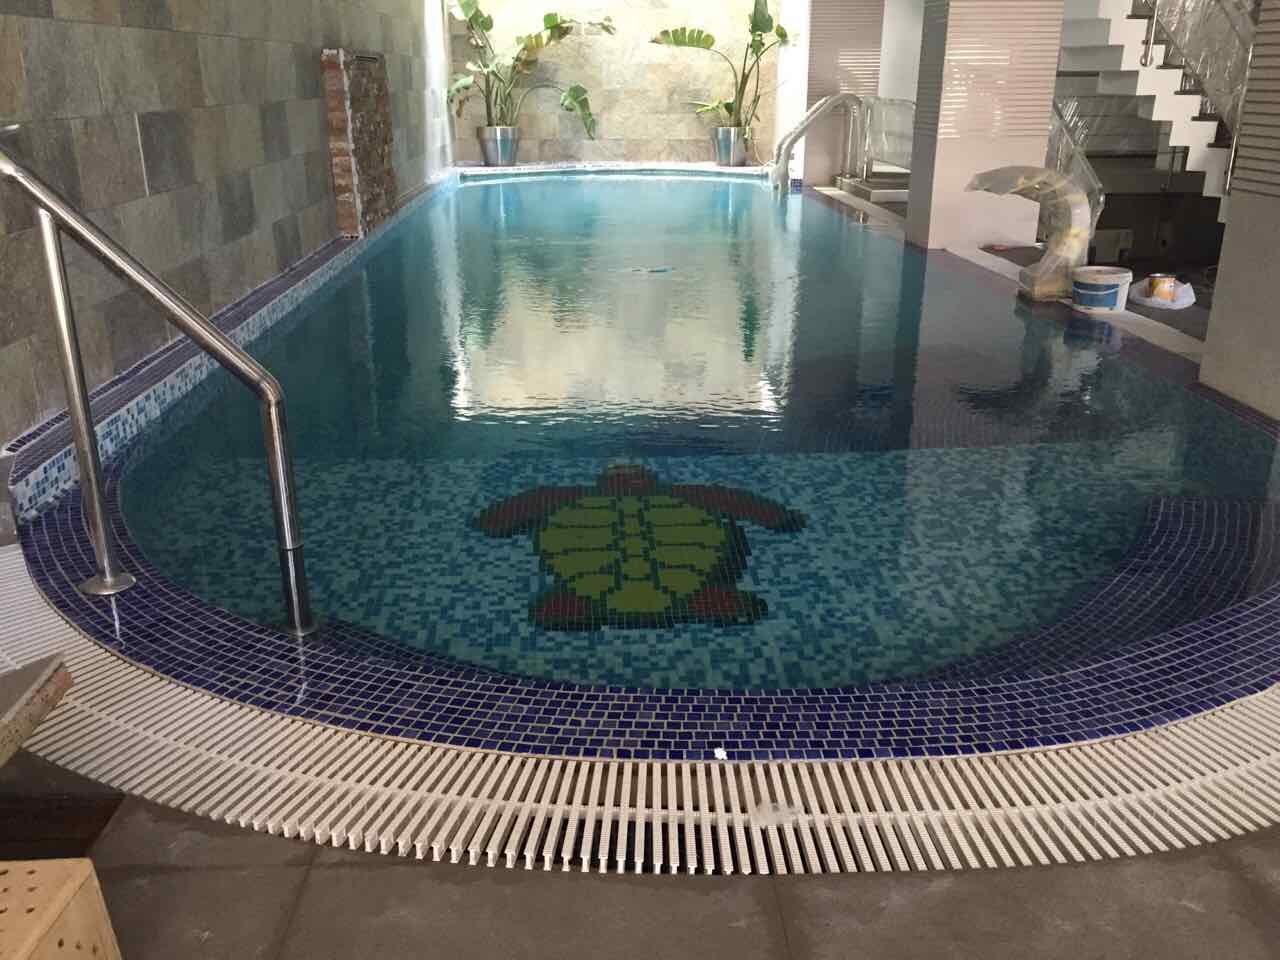 Awesome vente jacuzzi algerie gallery awesome interior for Piscine demontable algerie